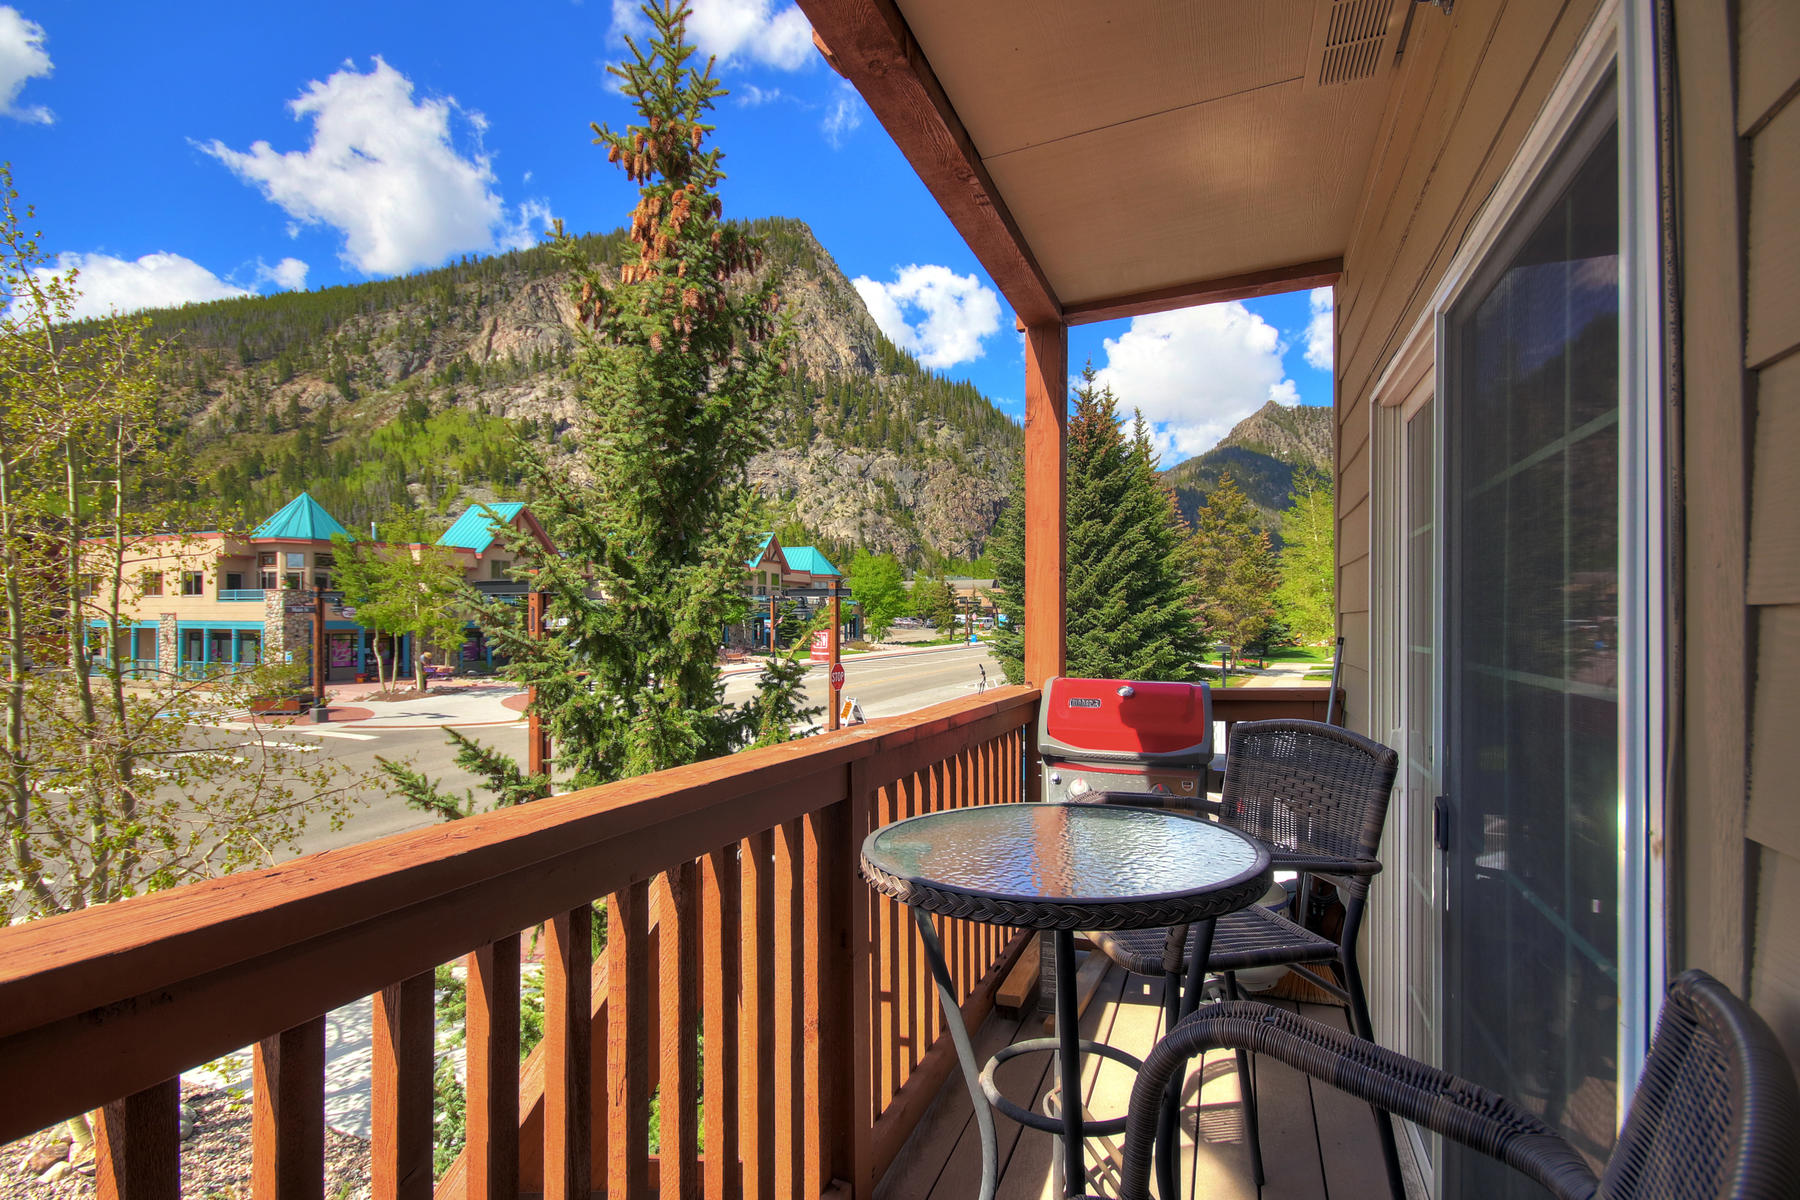 Condominiums for Sale at Frisco Main Street Commons Condo #201 101 E Main Street E #201, Frisco, Colorado 80443 United States